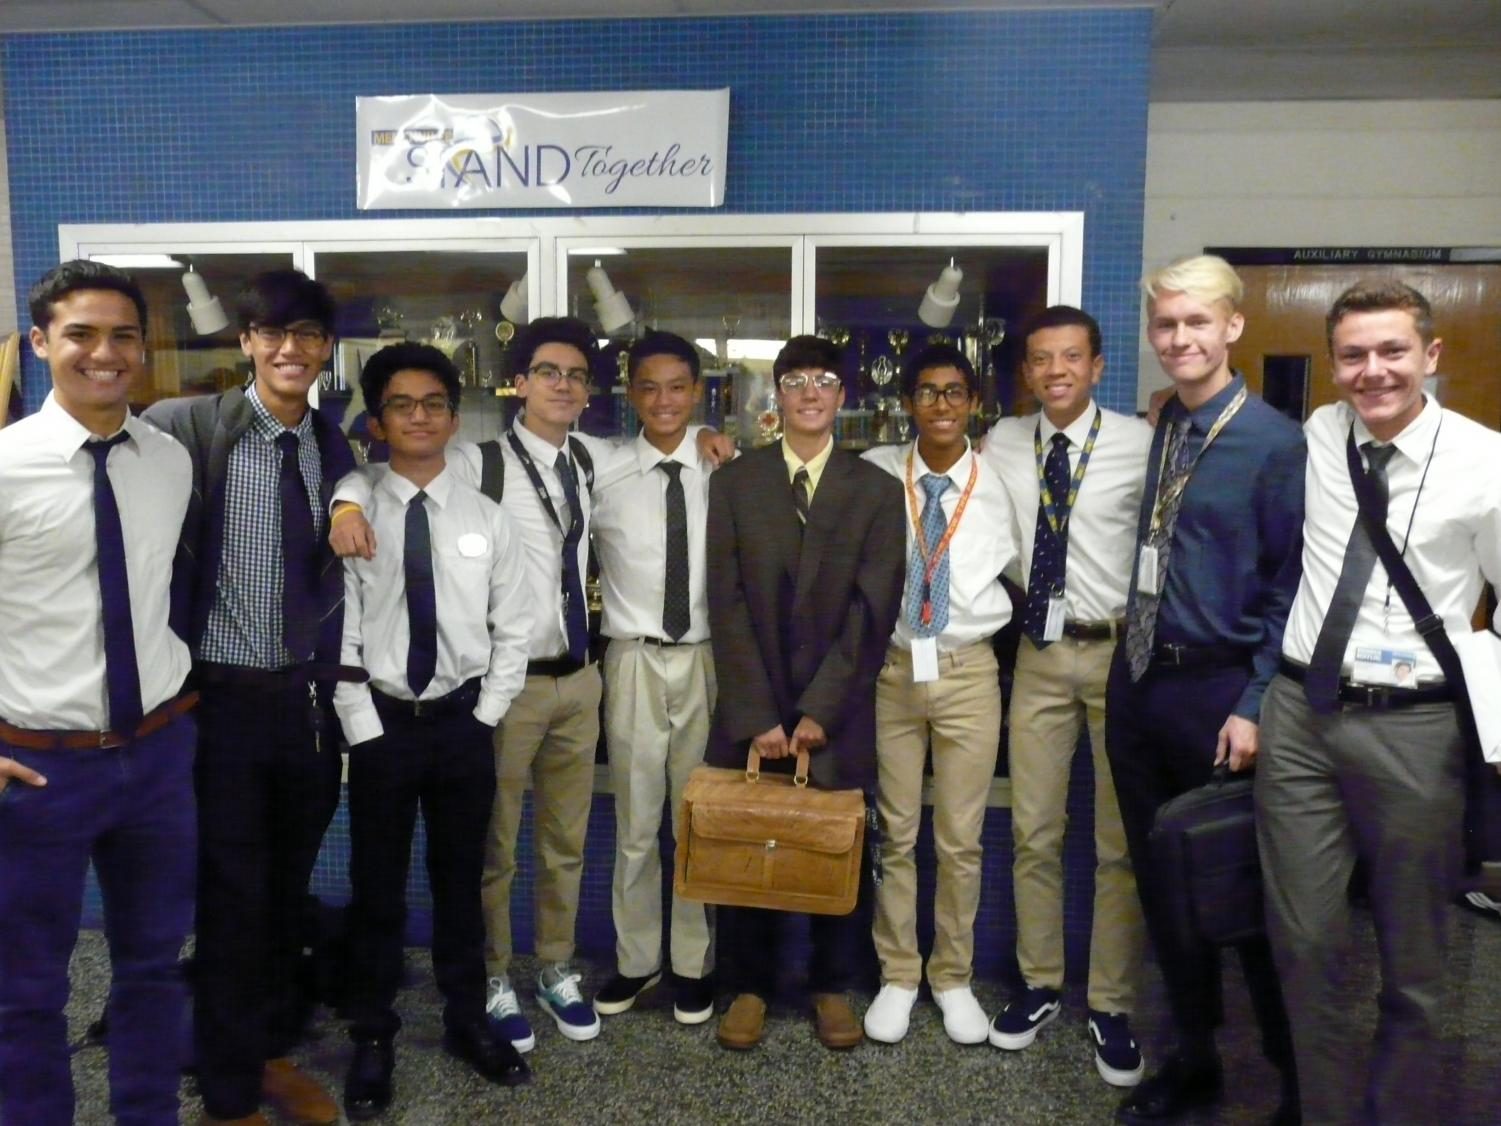 A+whole+staff+of+juniors+is+ready+for+the+rat+race%2C+complete+with+ties+and+leather+briefcases.